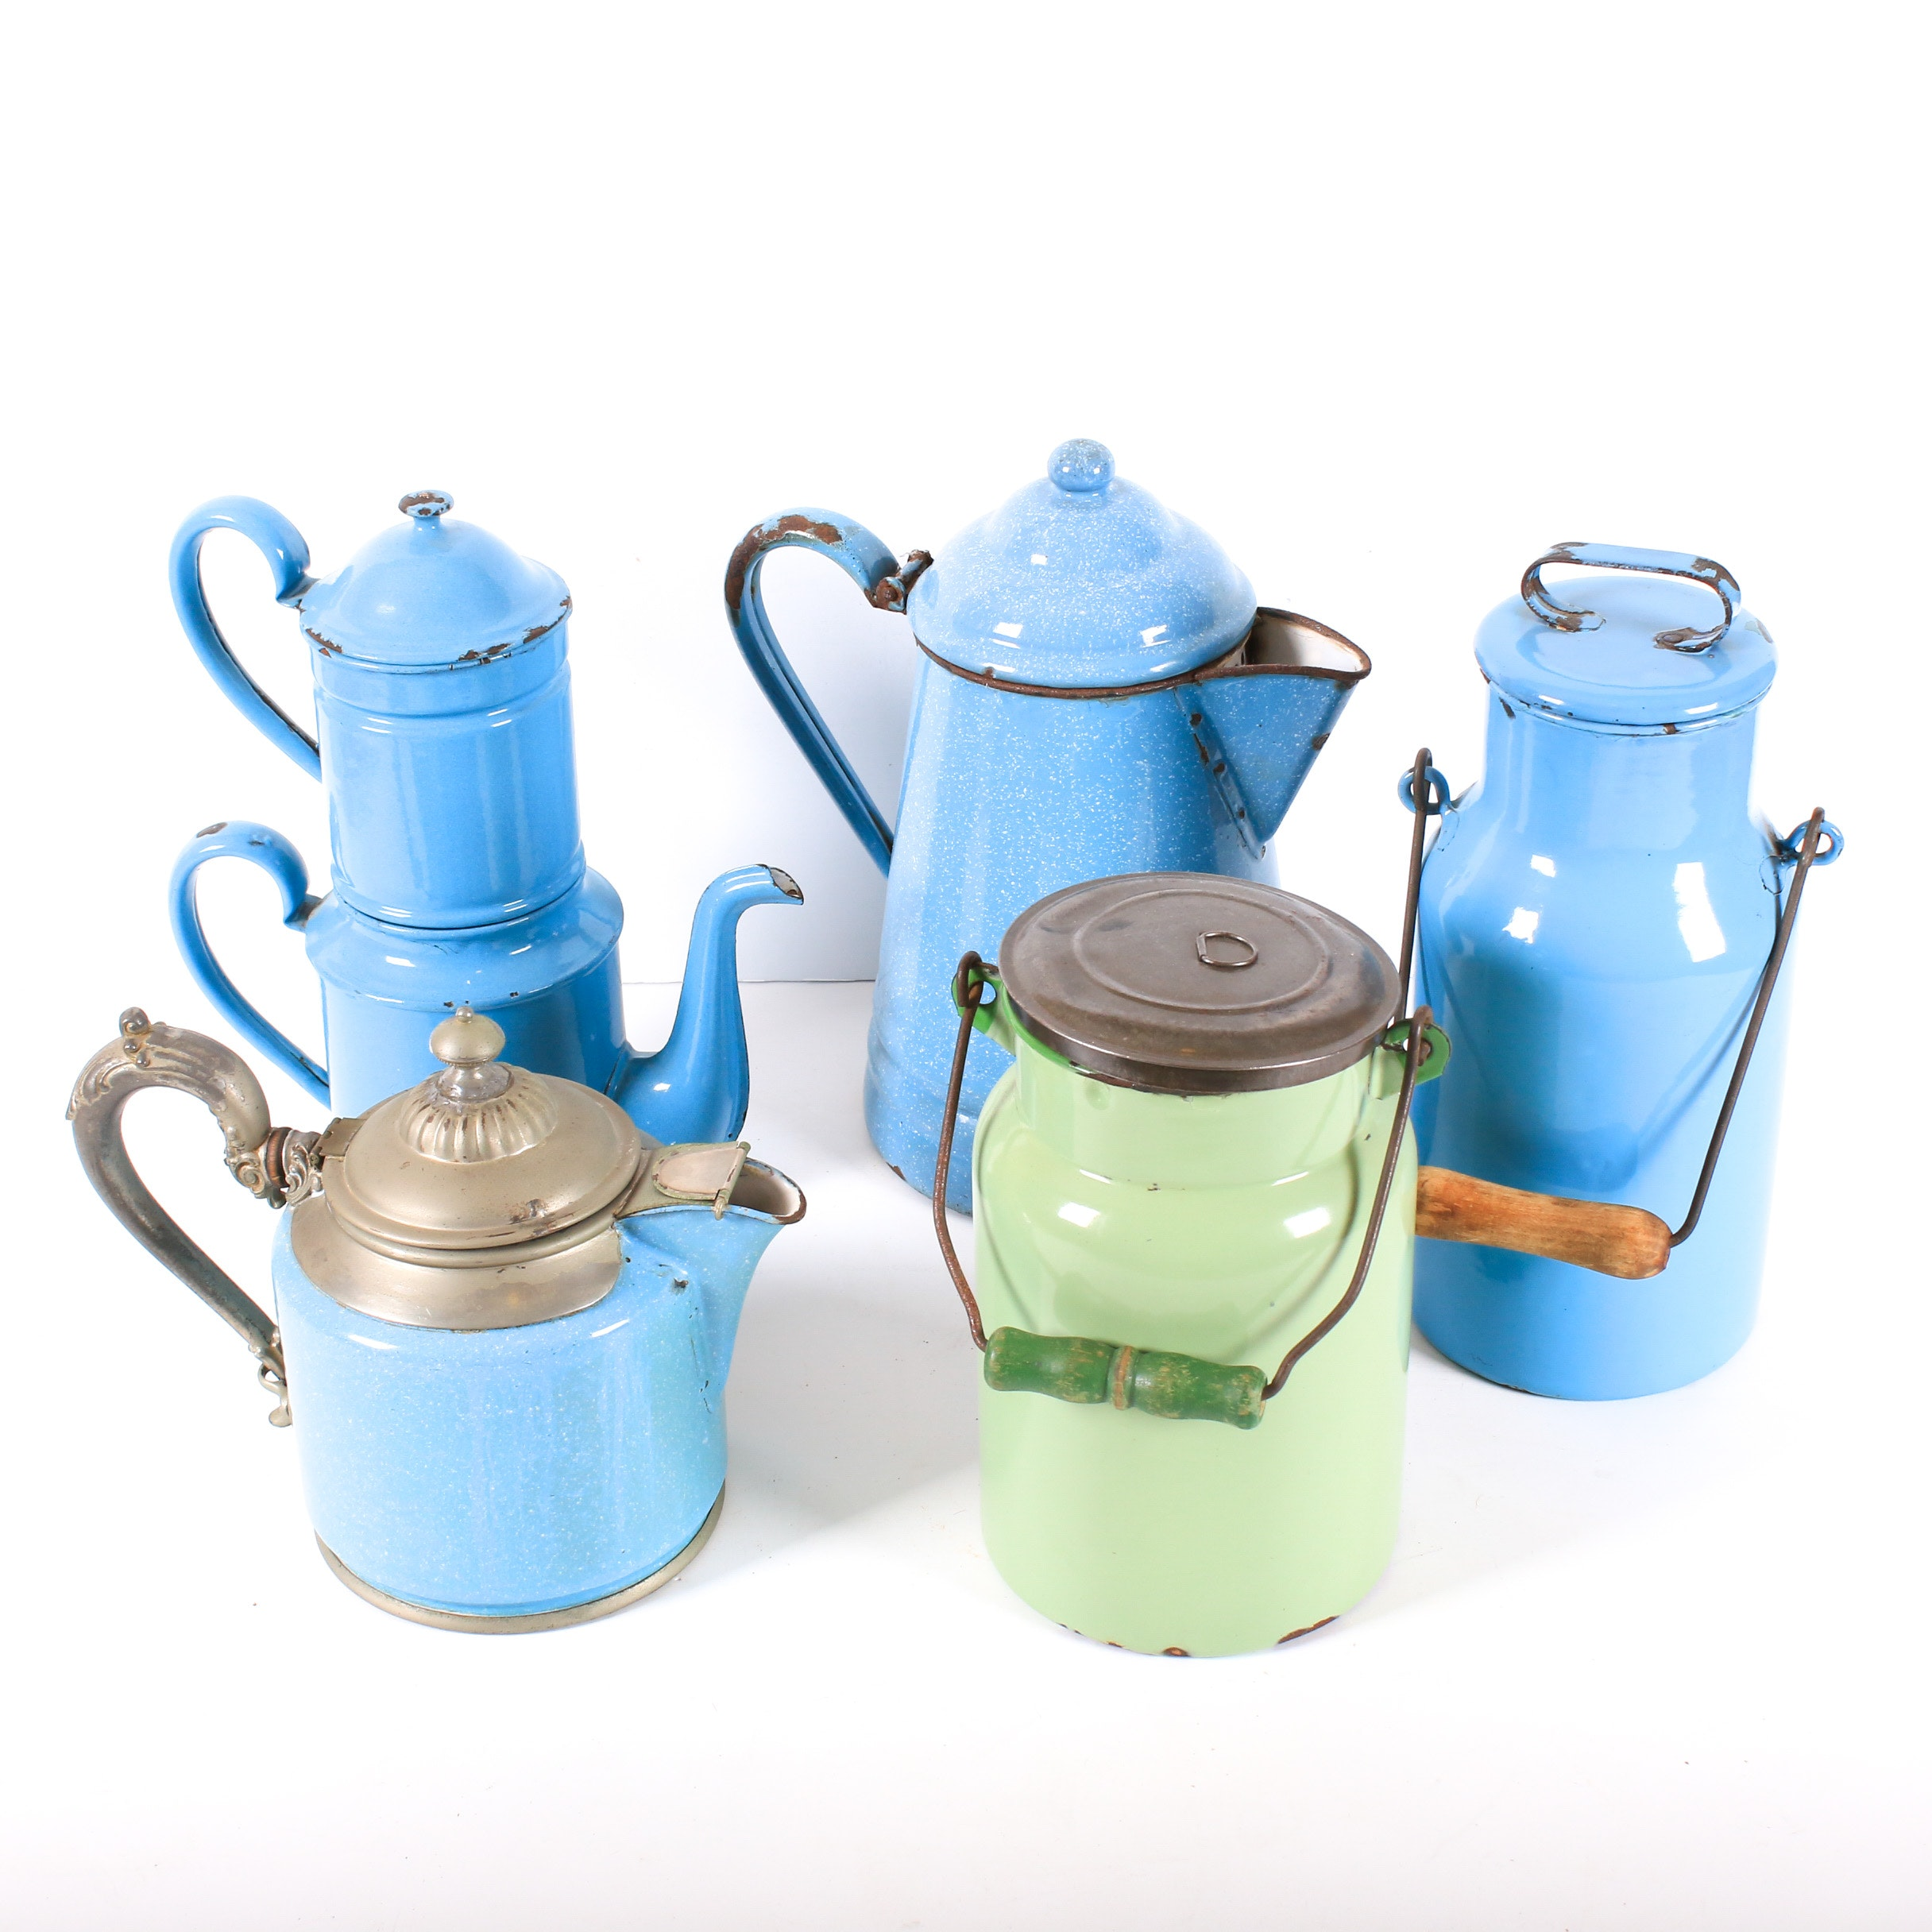 Blue Enamelware Teapots and Canisters